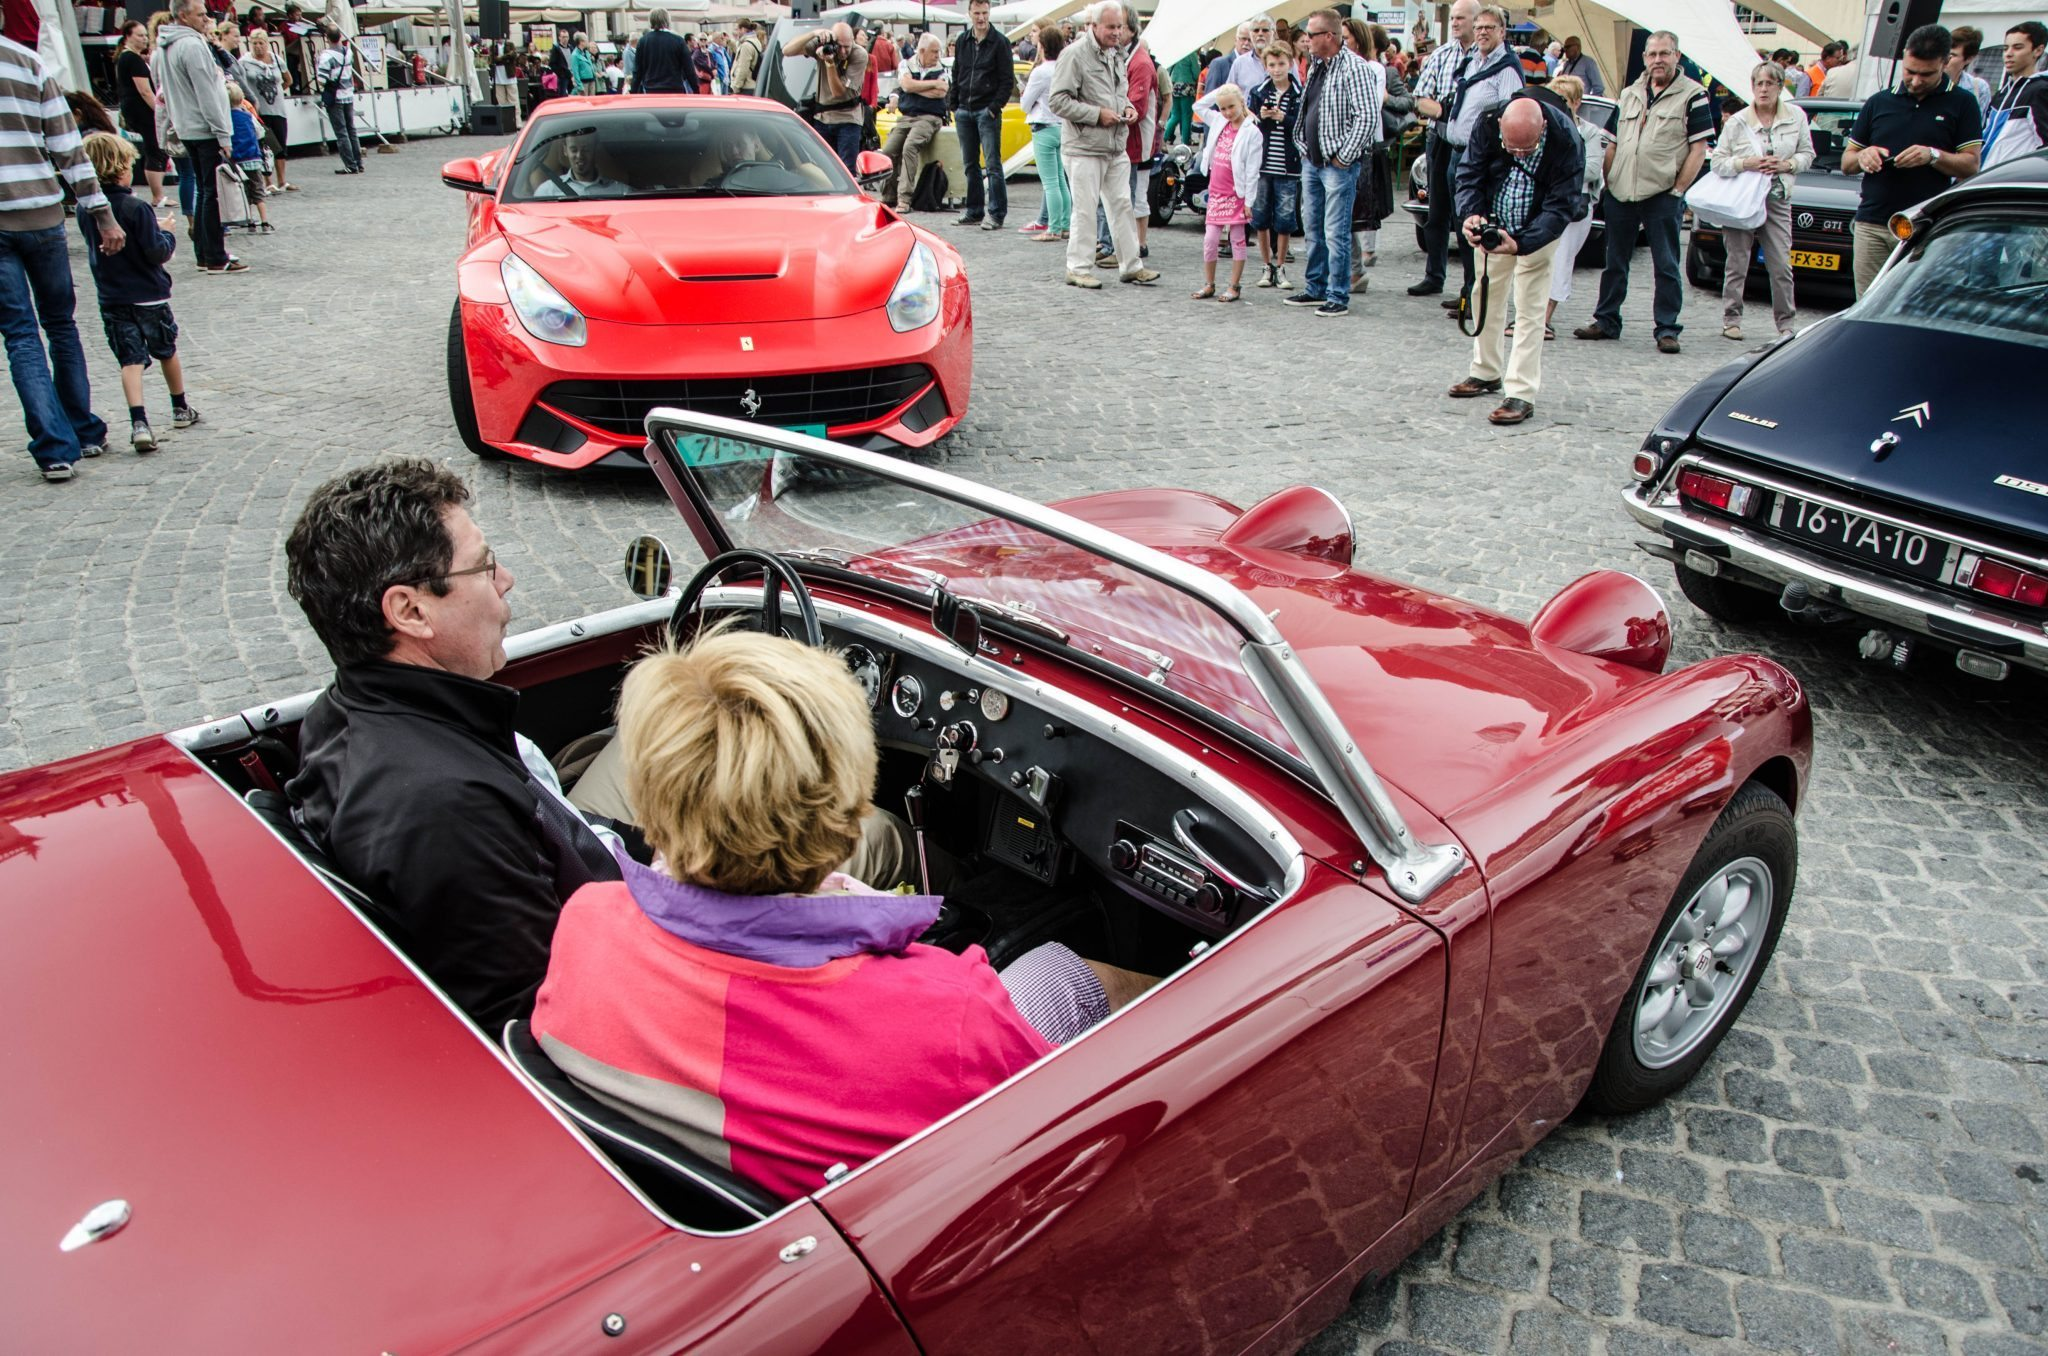 Cars charity zondag 7 september 2014 for How to buy a car from charity motors